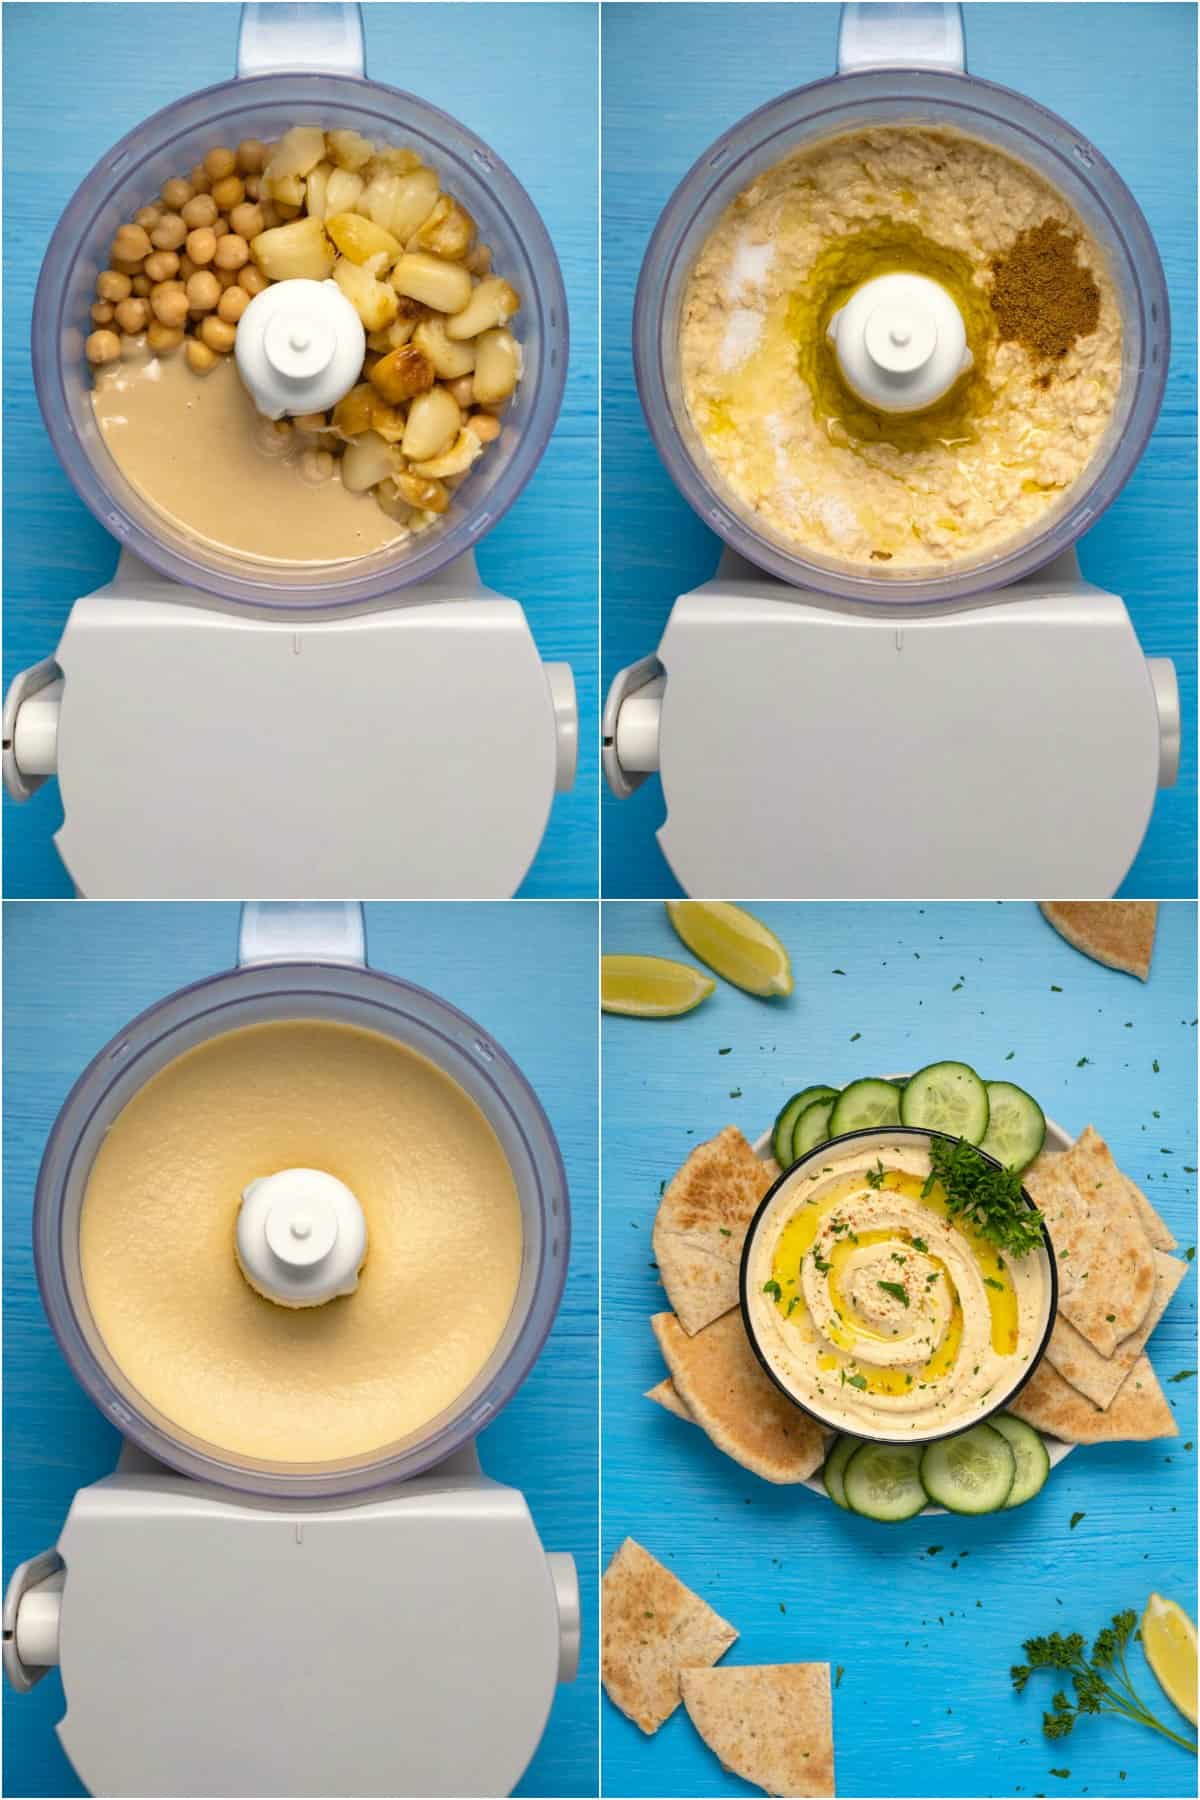 Step by step process photo collage of making roasted garlic hummus.